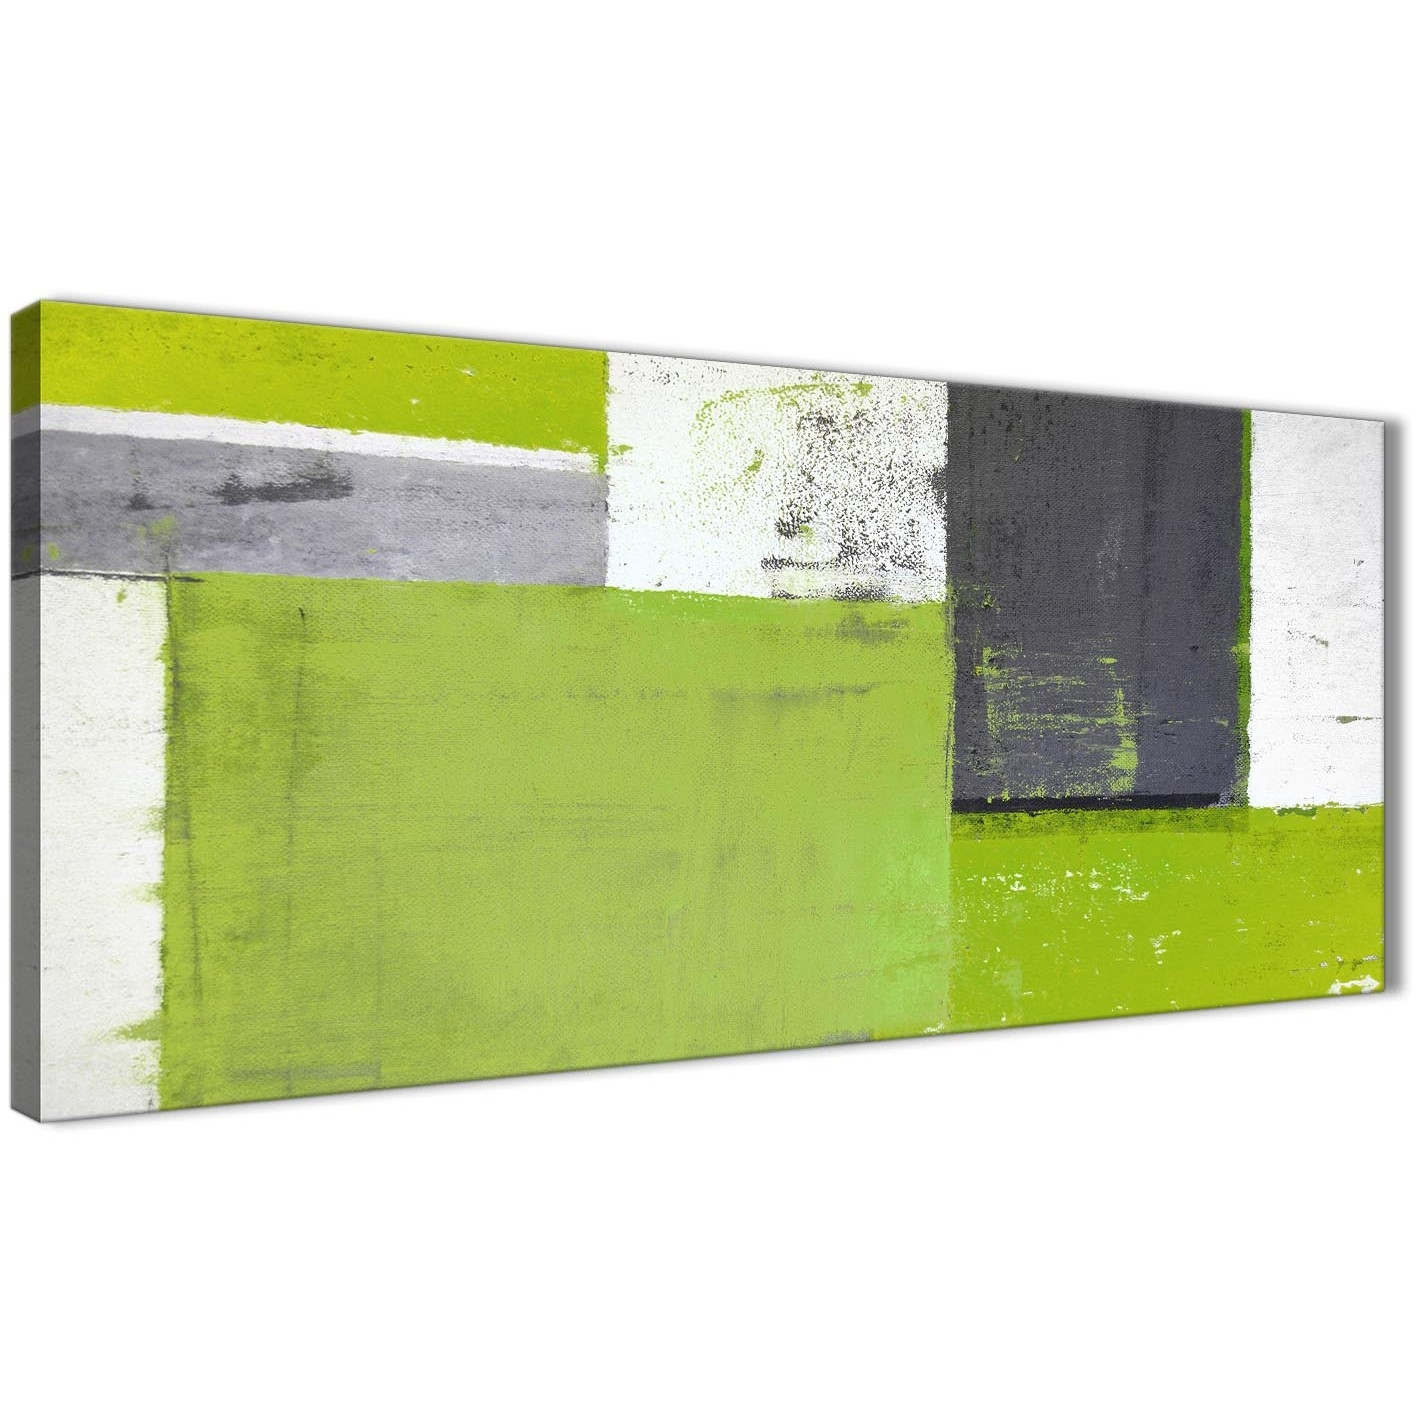 Lime Green Grey Abstract Painting Canvas Wall Art Print – Modern With Most Up To Date Green Abstract Wall Art (View 9 of 20)